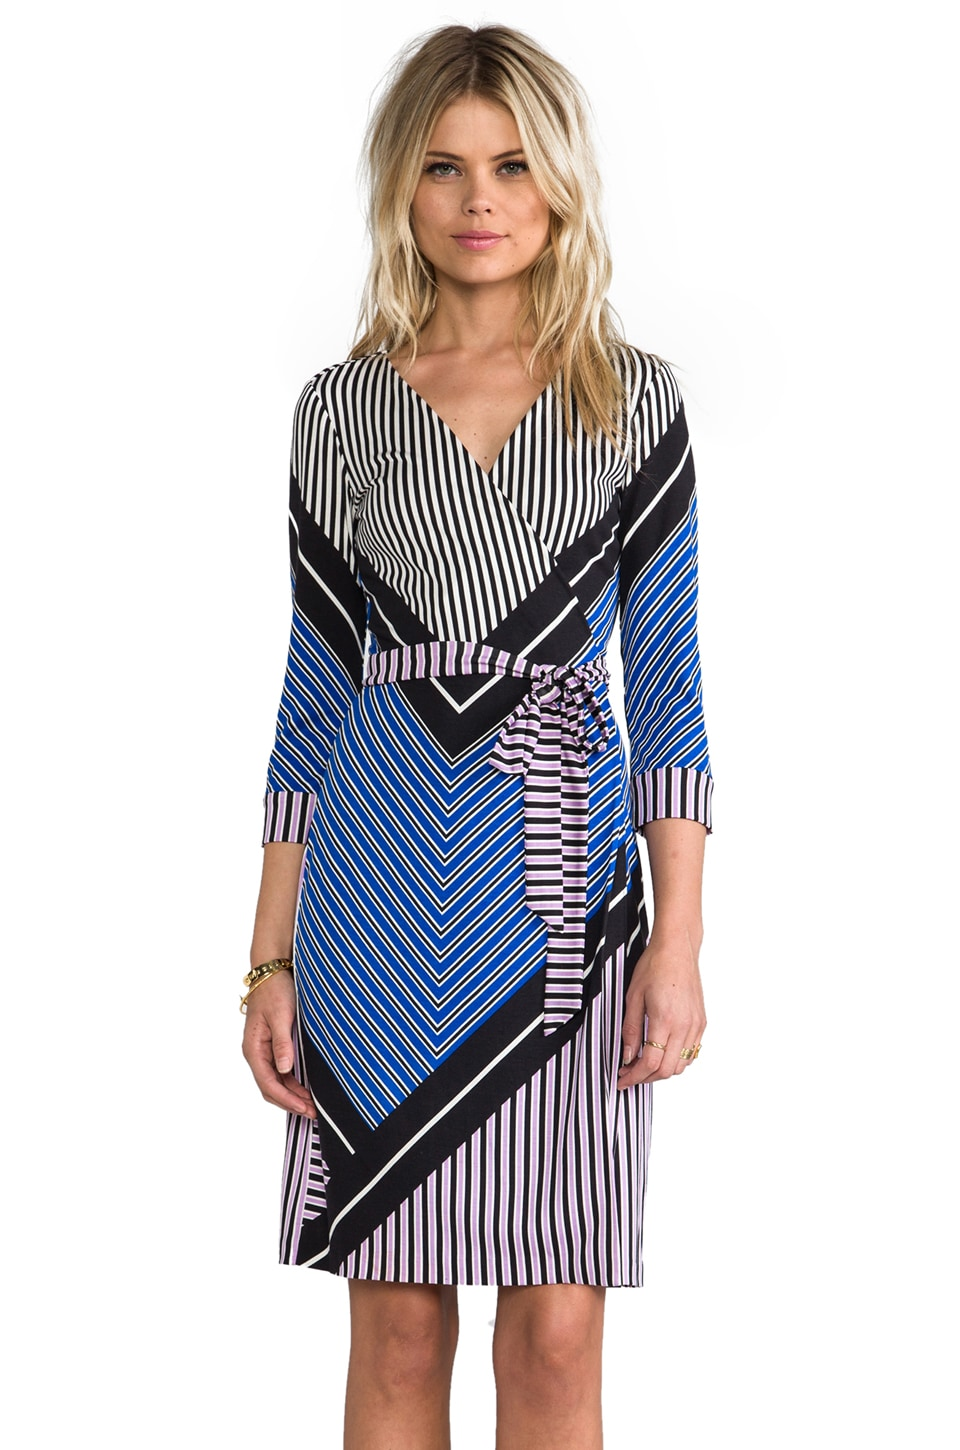 Diane von Furstenberg RUNWAY New Juilan Two Dress in Sailor Chevron/Purple Lily